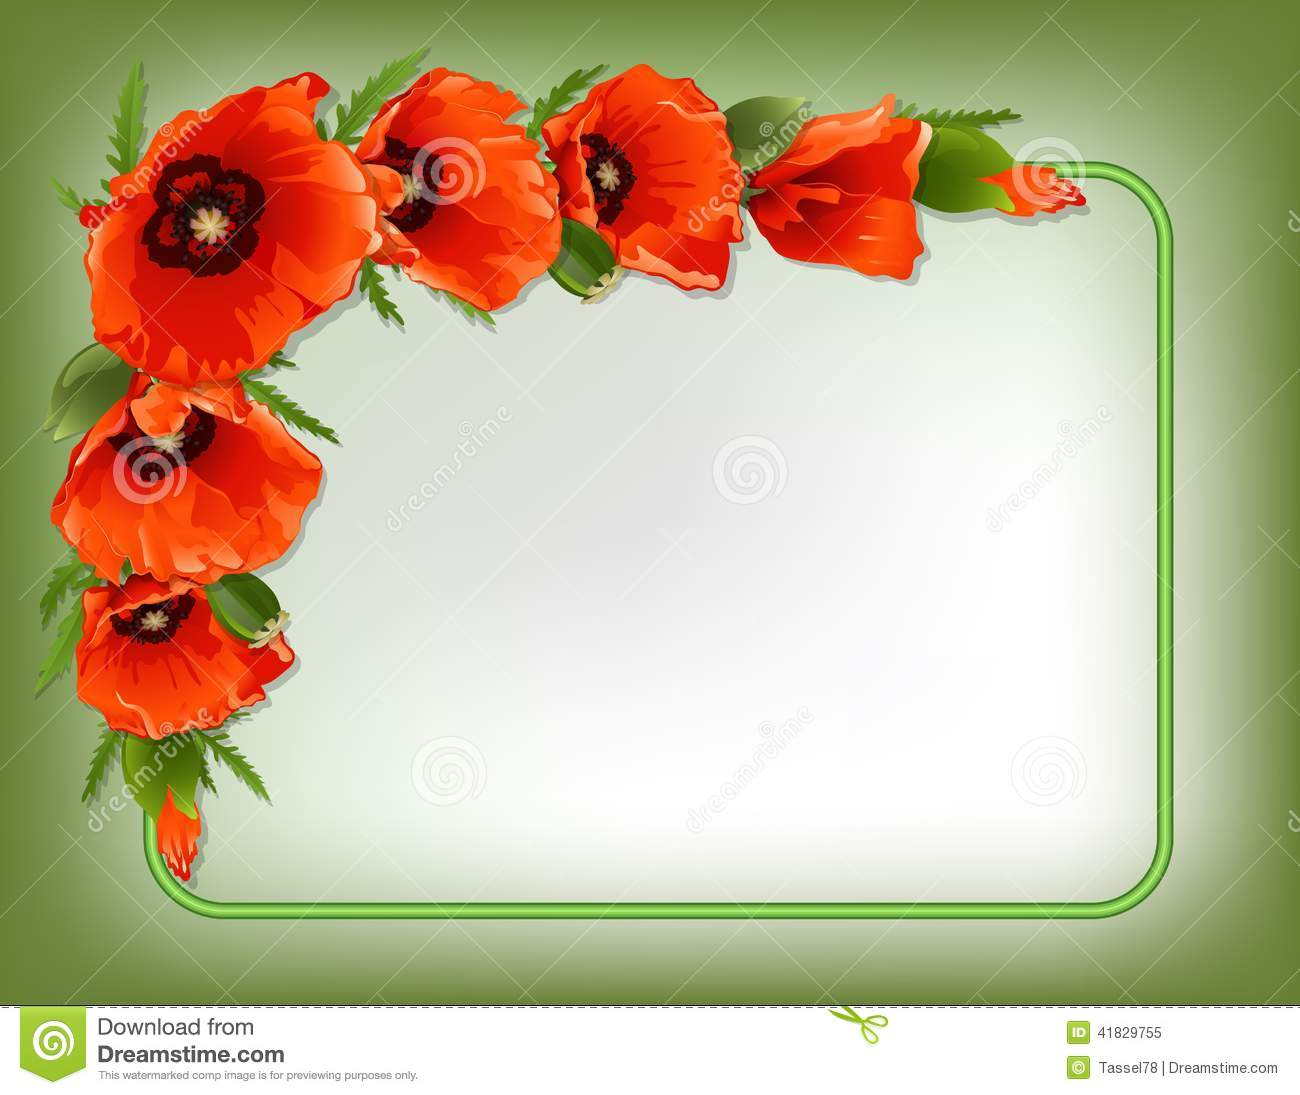 Red Poppies Floral Frame, Vector Stock Vector - Image ...